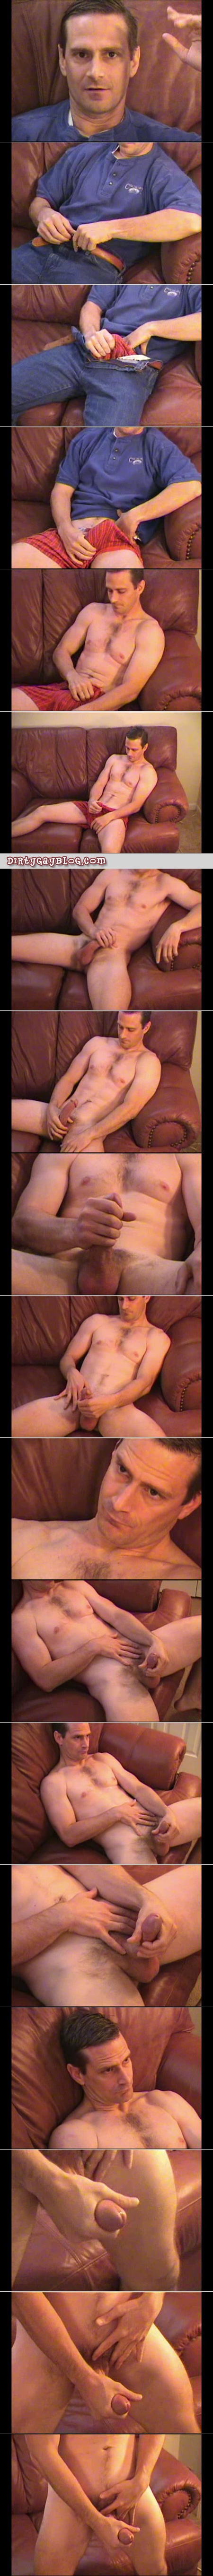 Muscular DILF with a boner in his boxers masturbating on the couch.